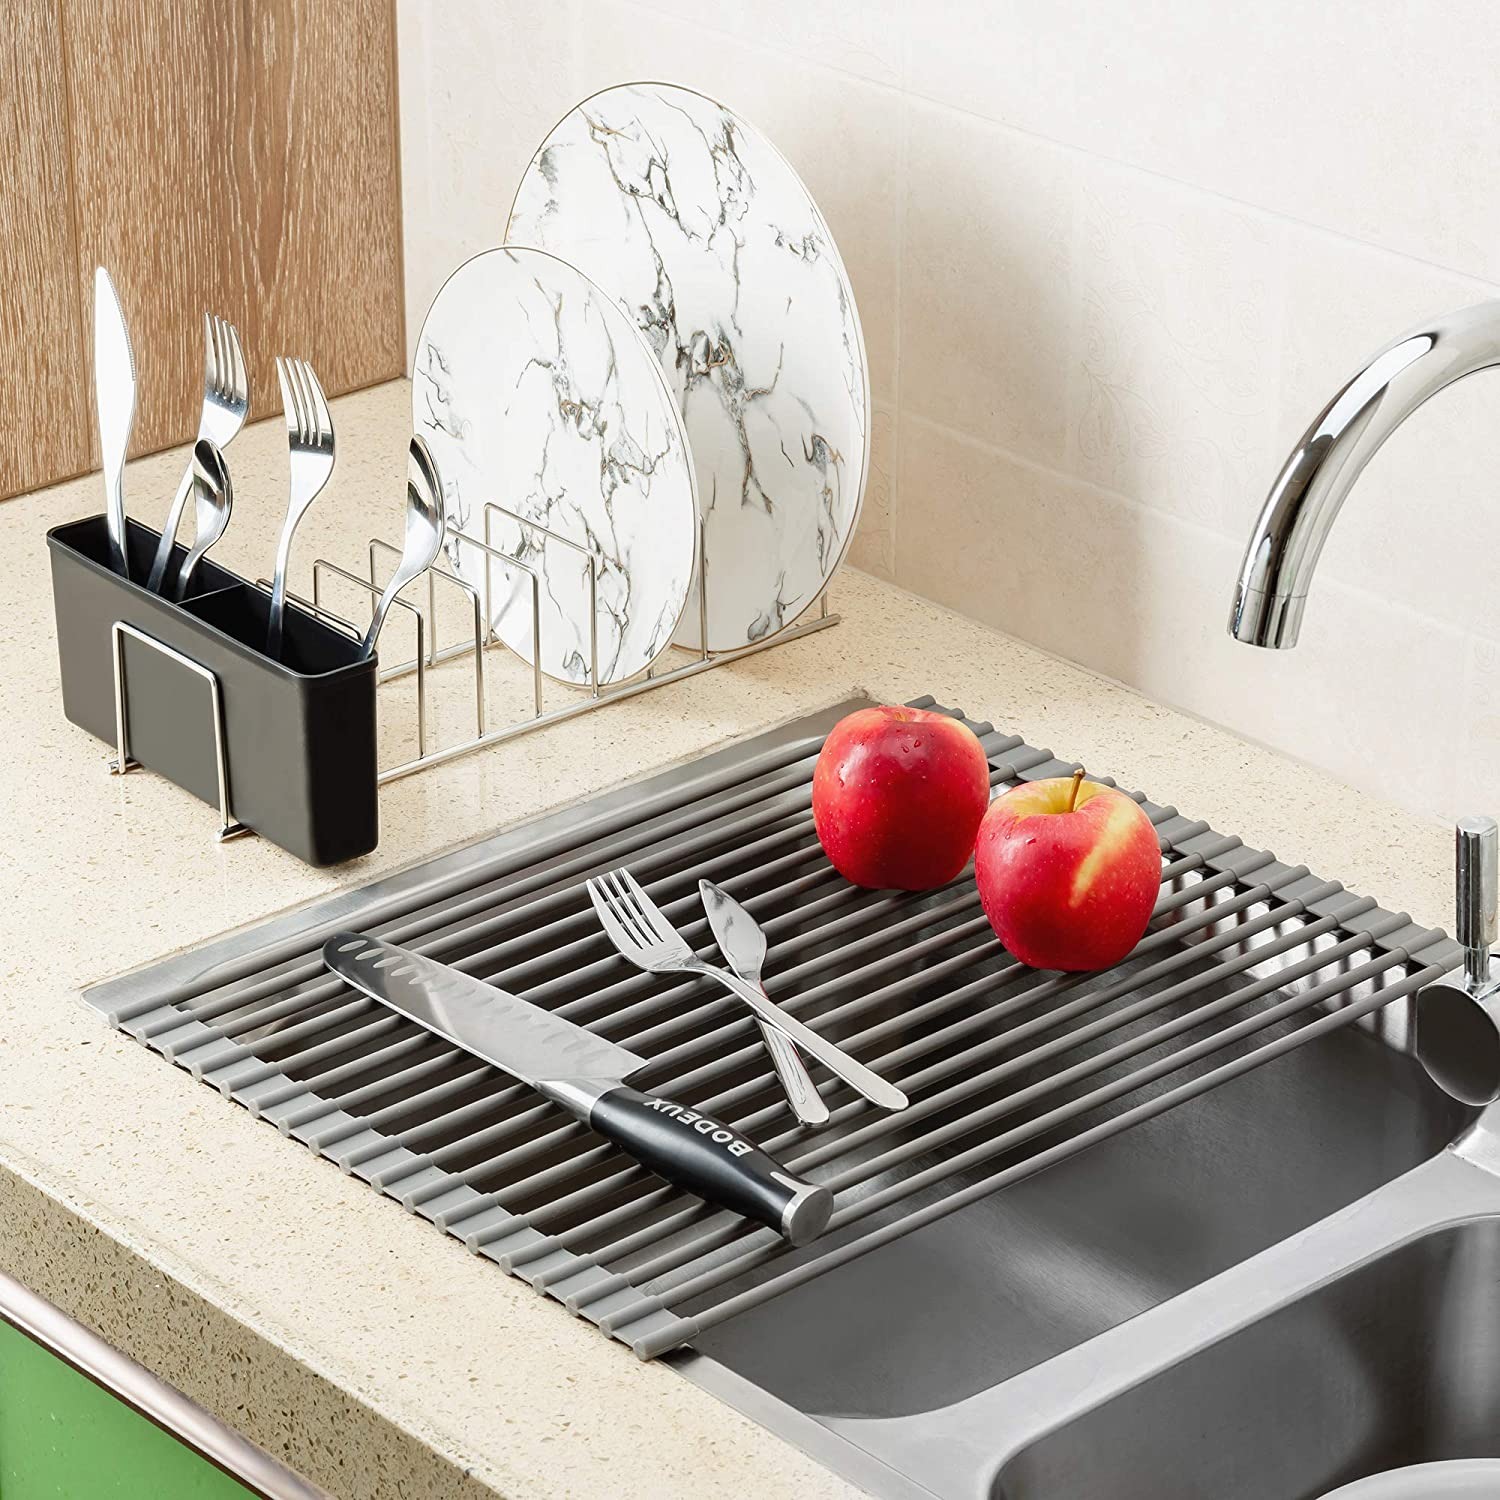 Iycorish Kitchen Organizer Pot Coperchio Rack Dish Rrain Rack Spoon Holder Mensola Tagliere Rack Pan Cover Stand Accessori da Cucina Bianco